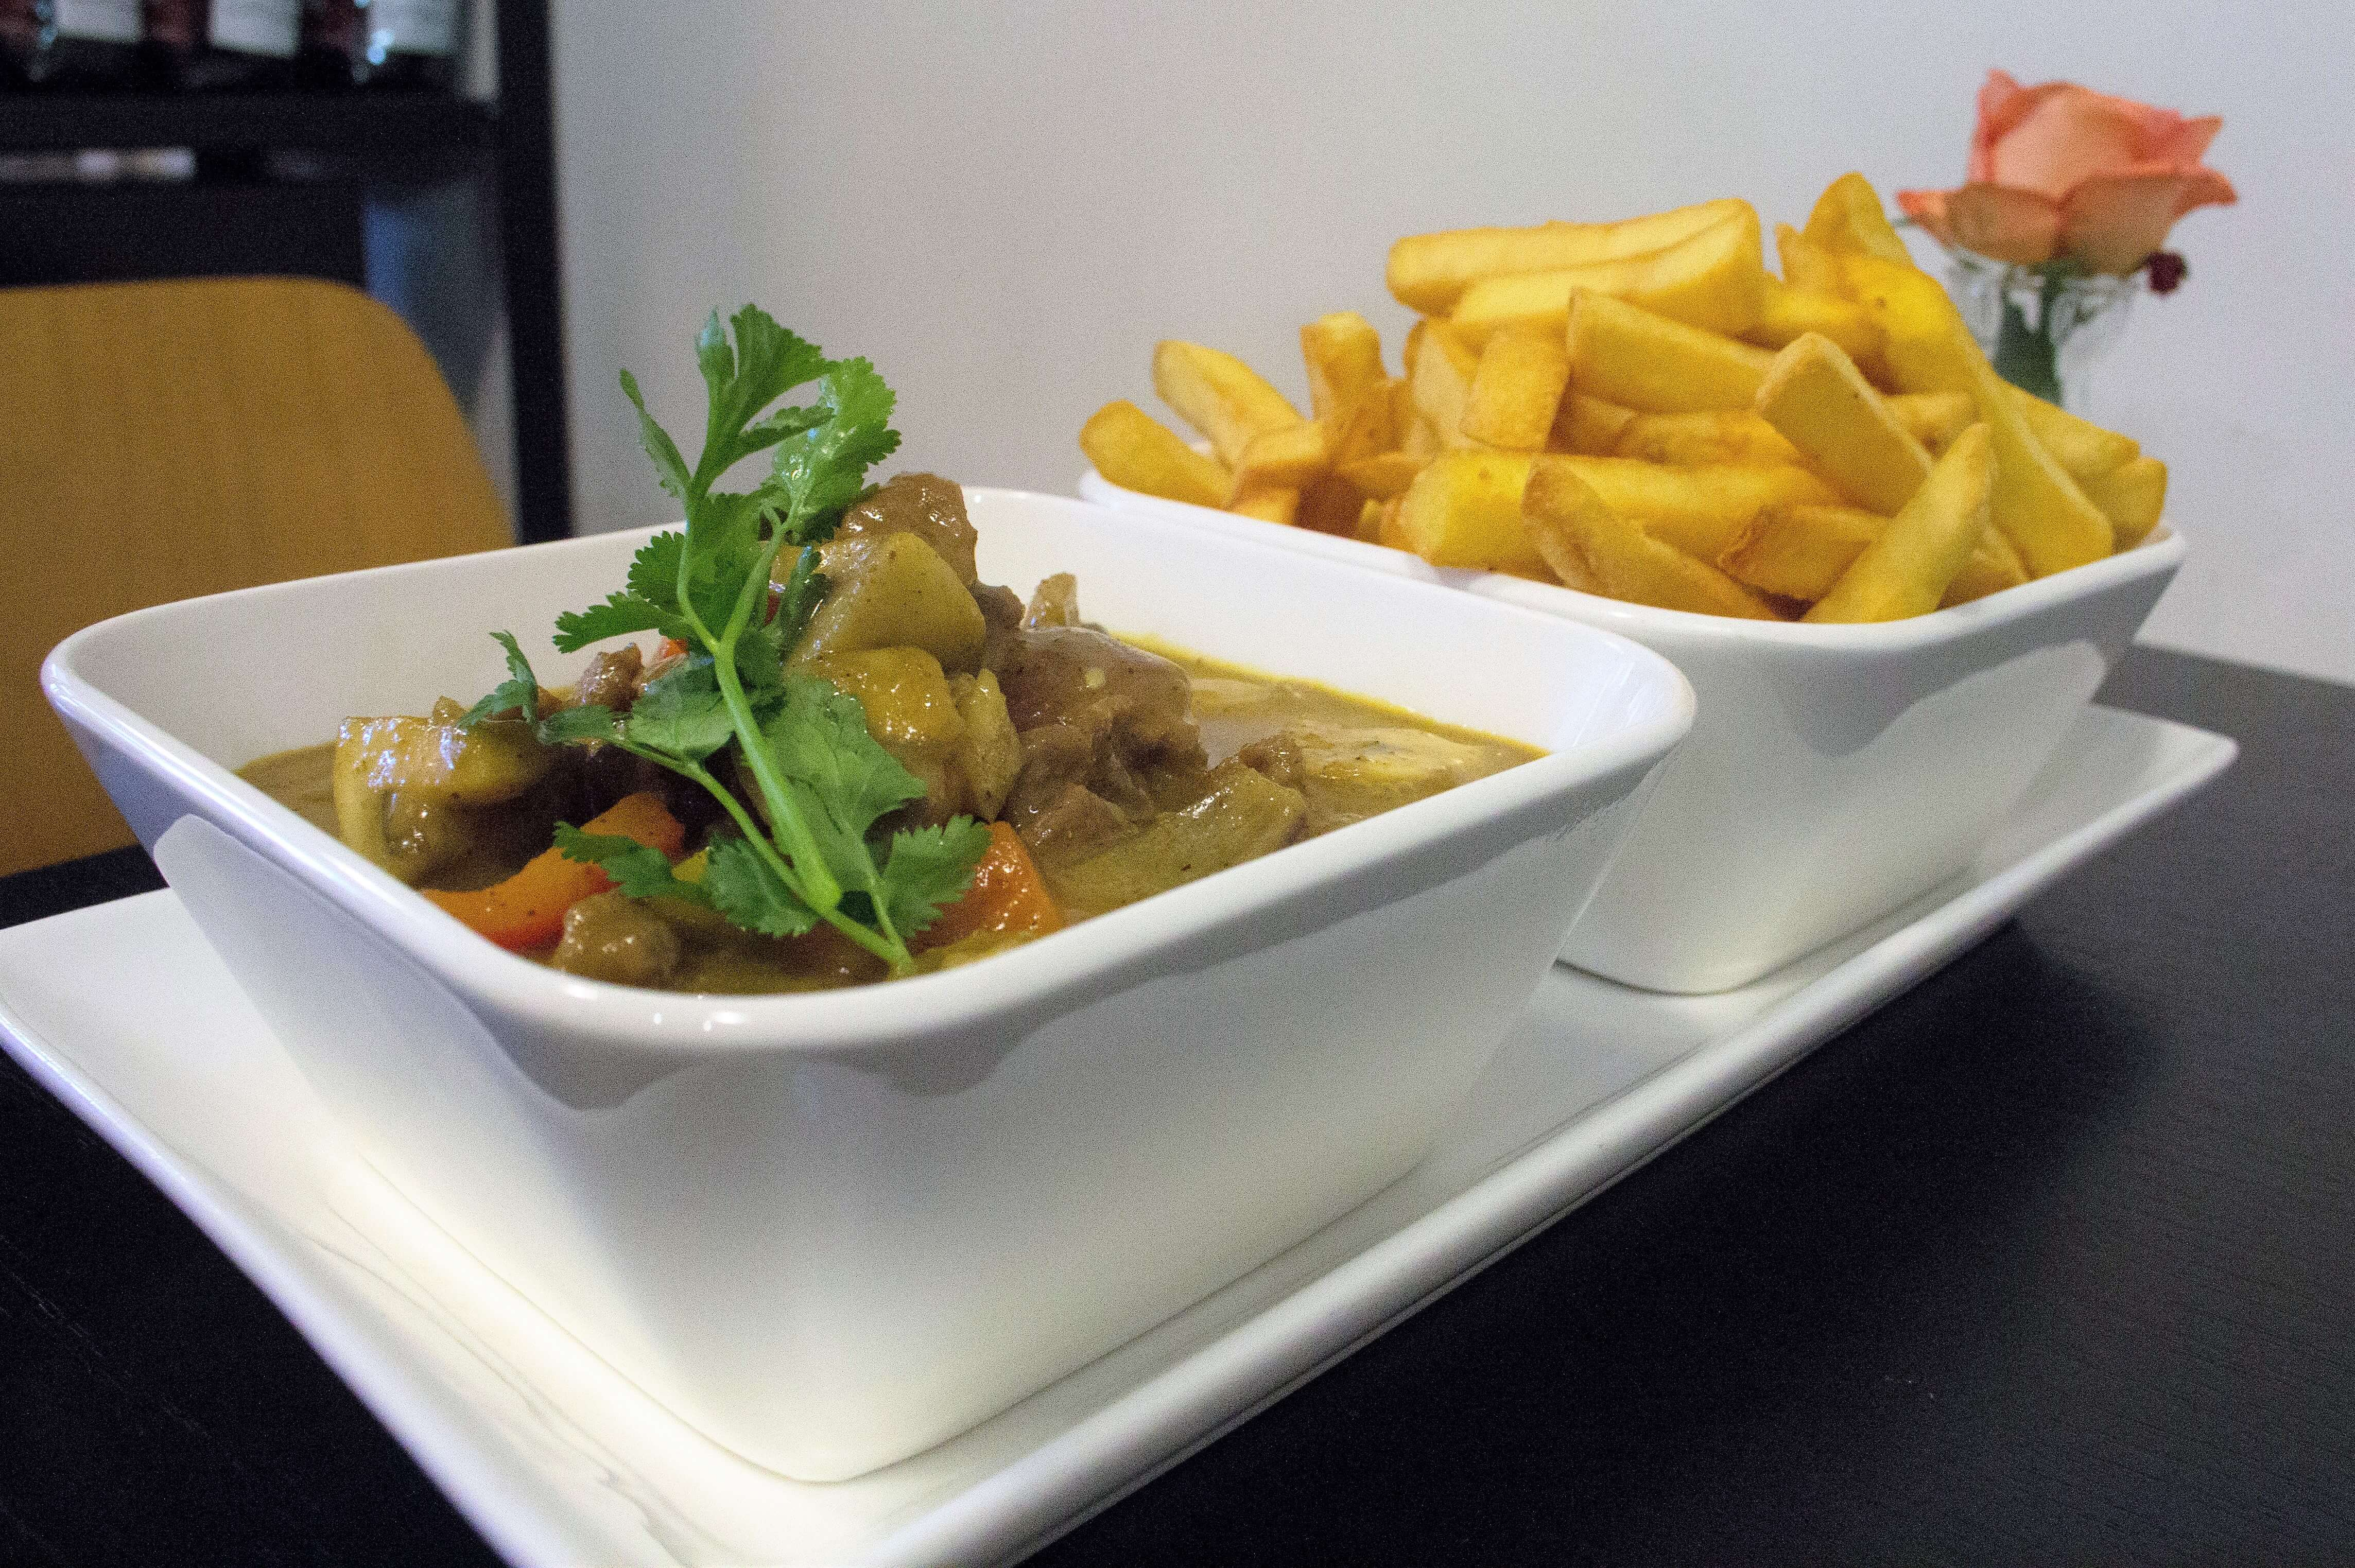 Beef Kandar Curry with chips. Dish on a table.